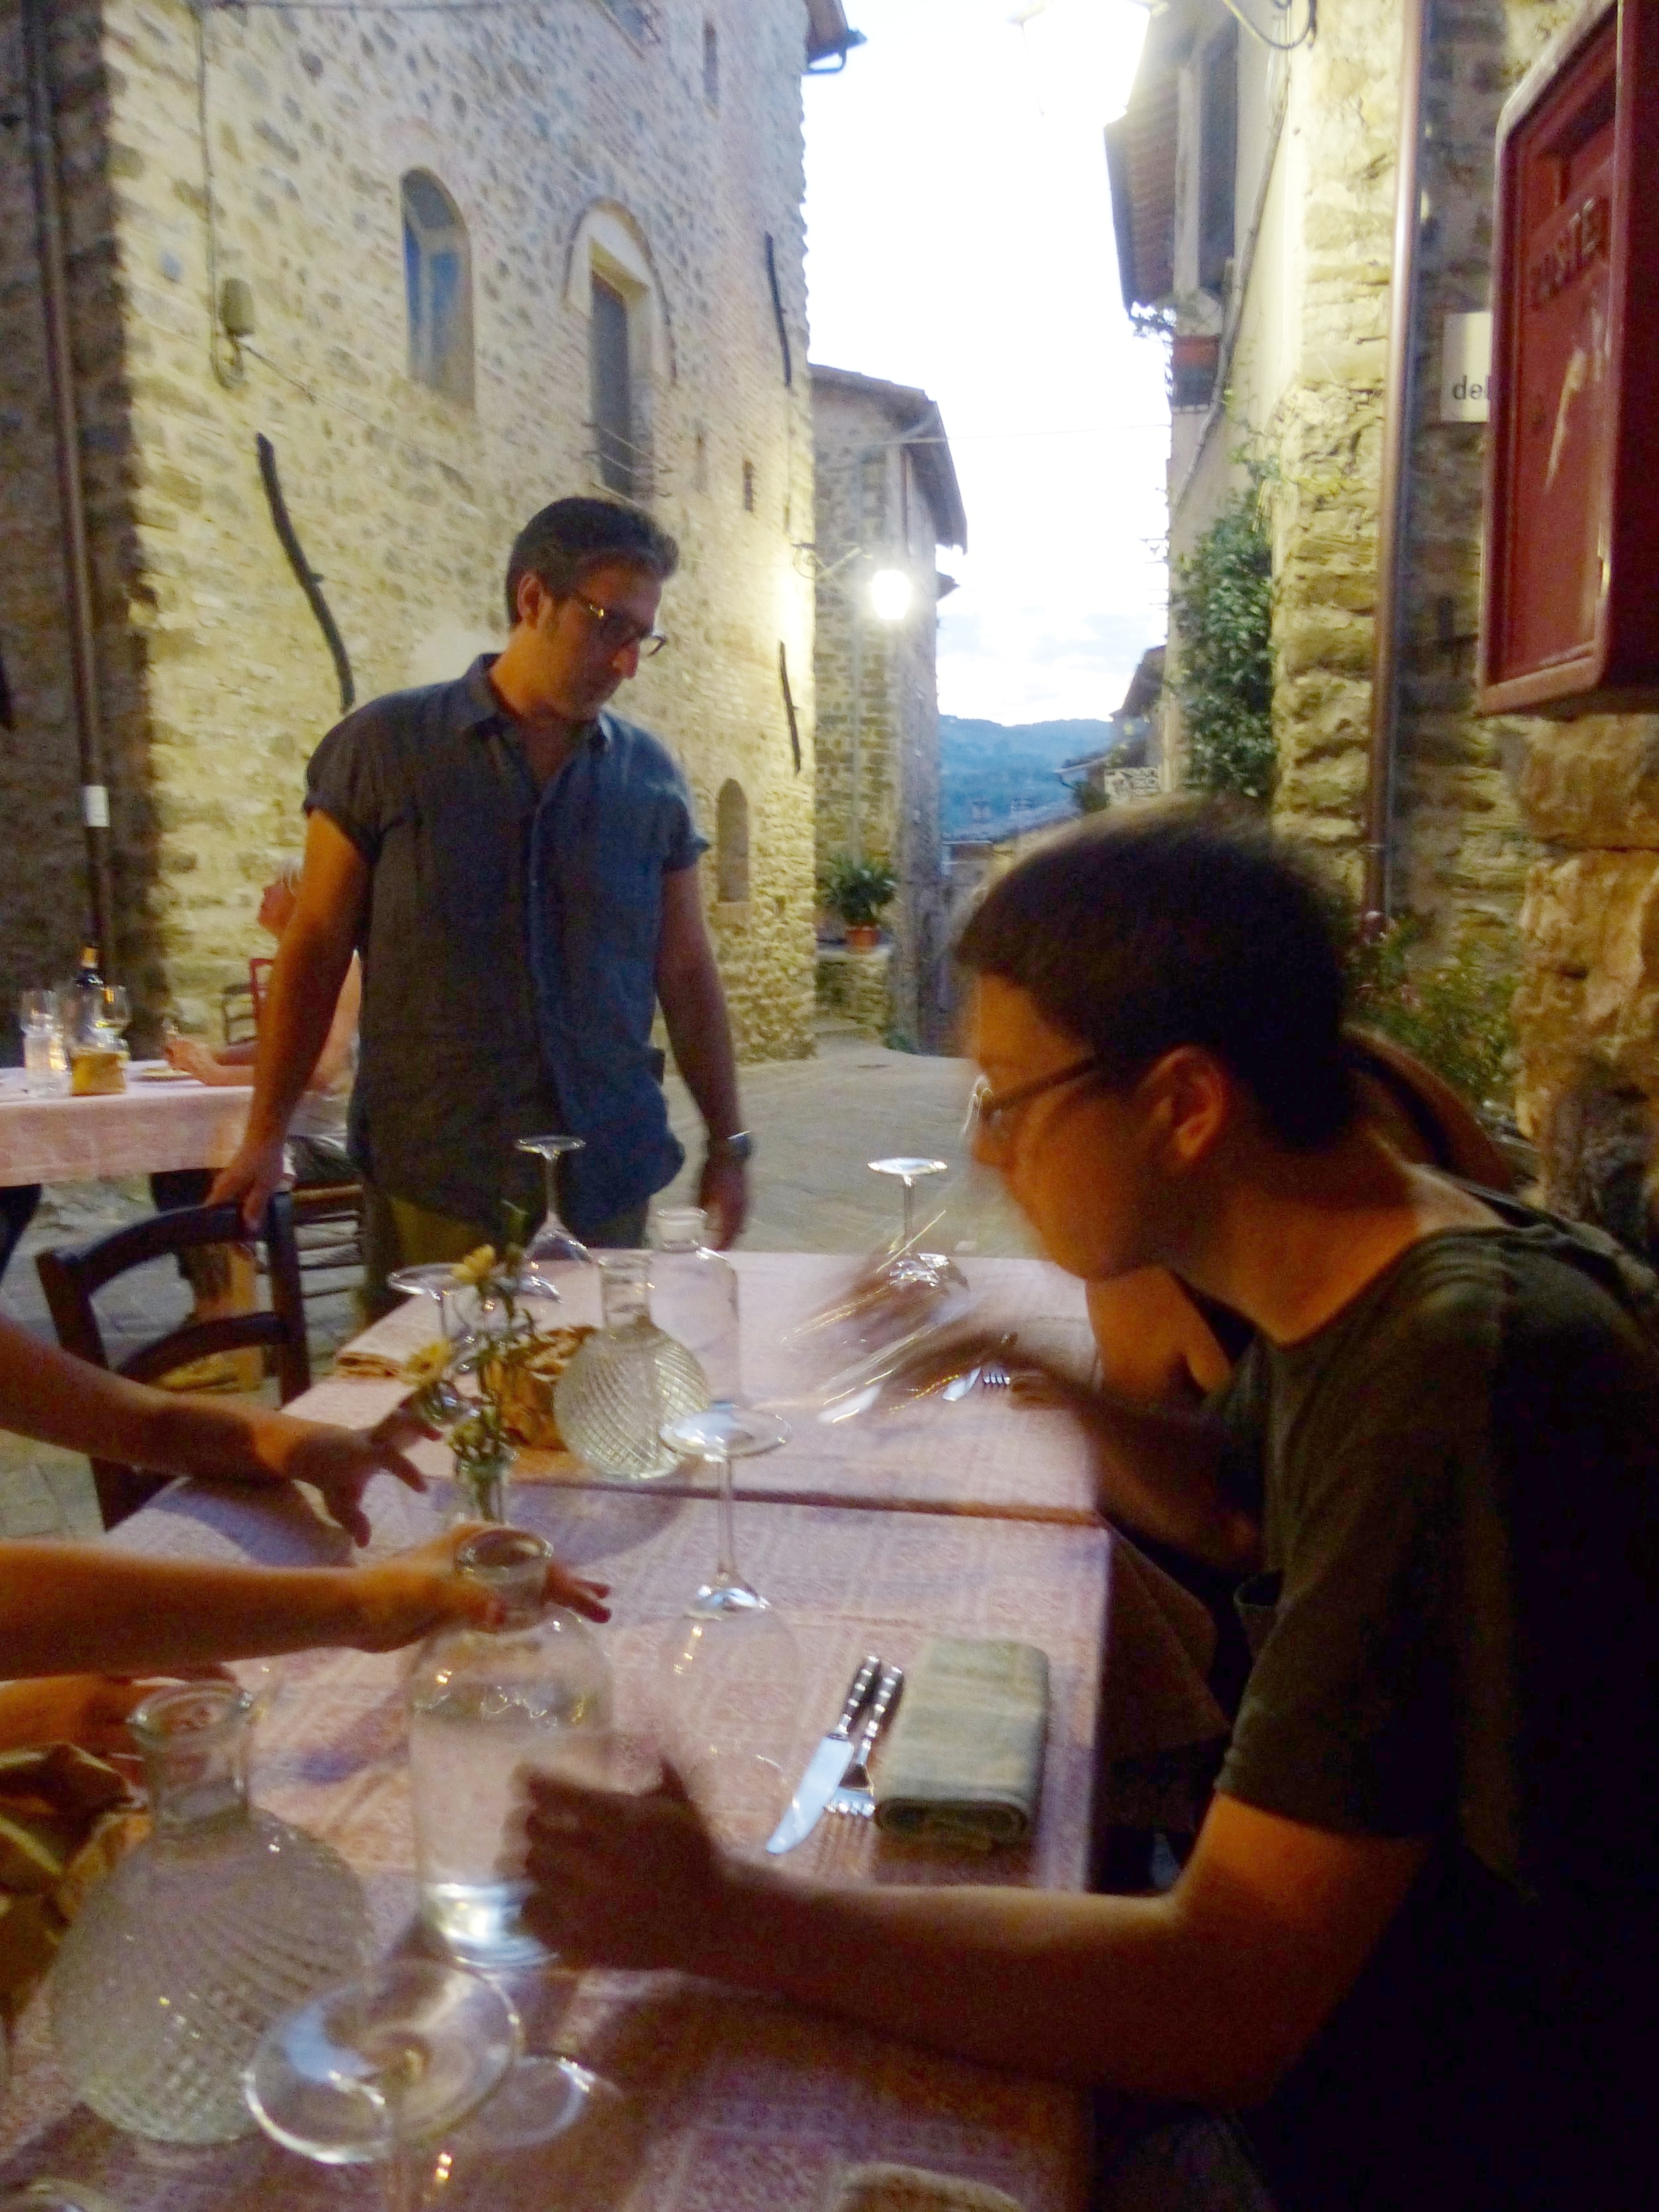 Dining outside Serpillo, Bevagna, umbria